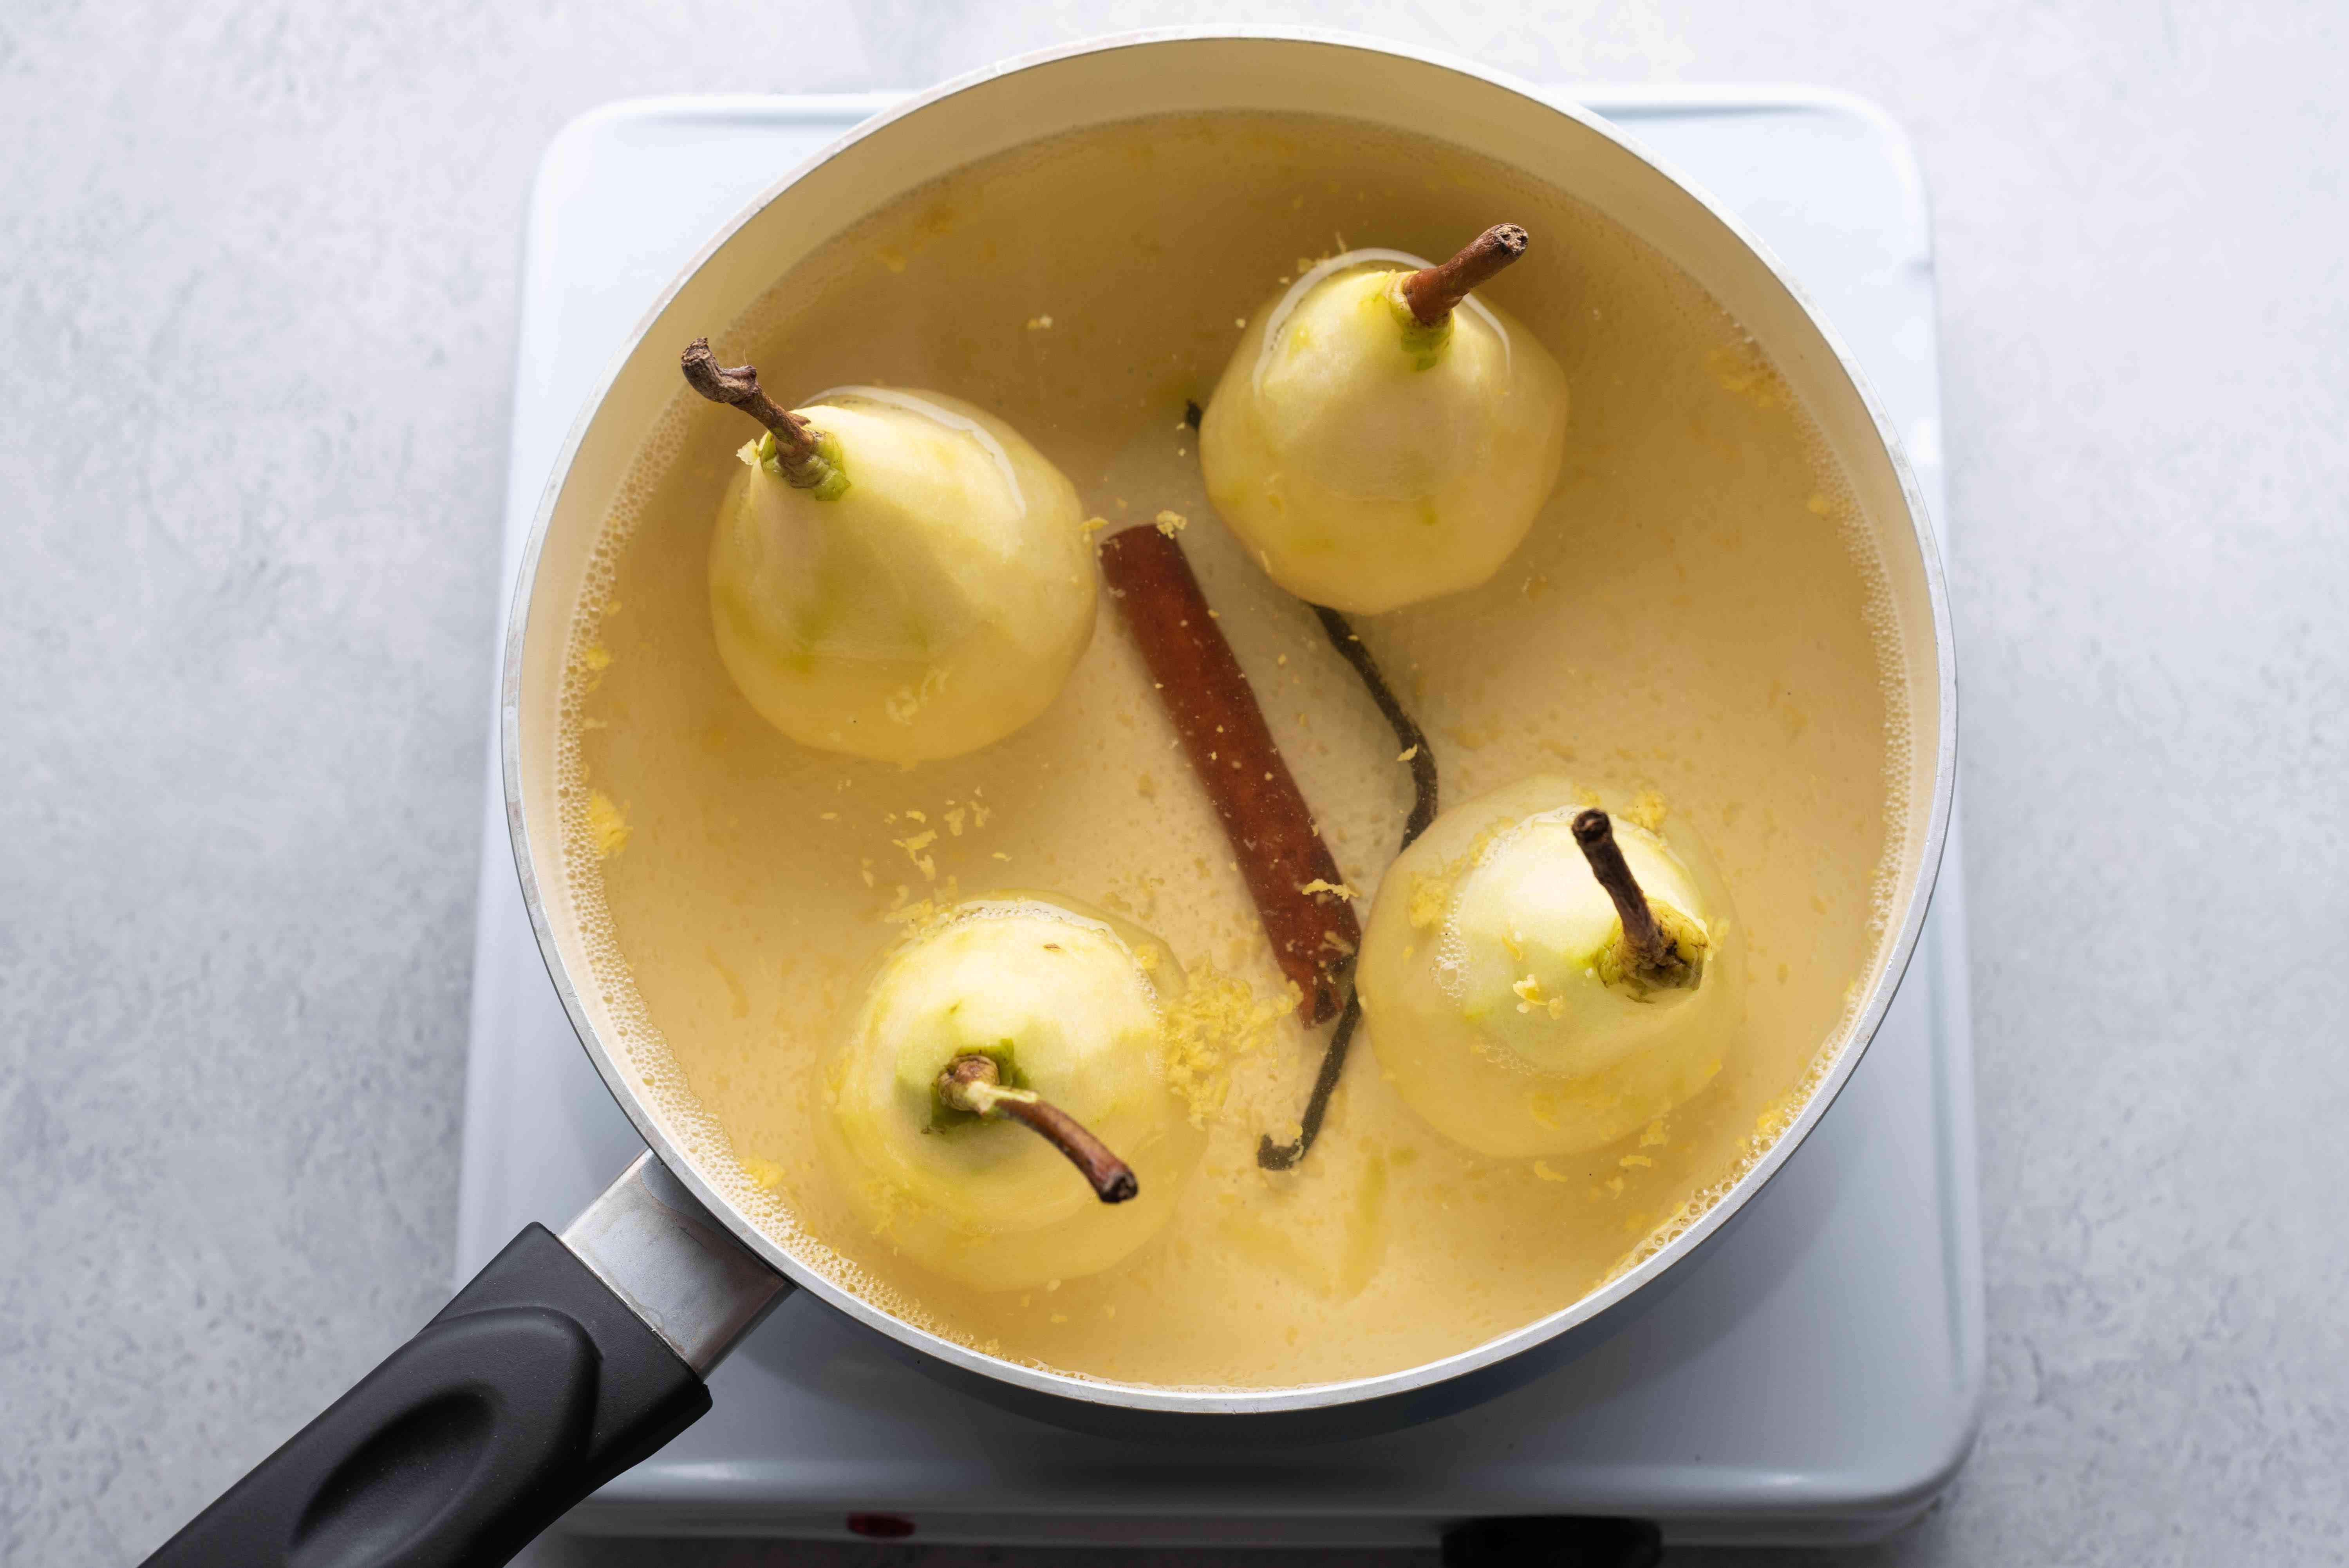 pears poaching in the white wine mixture